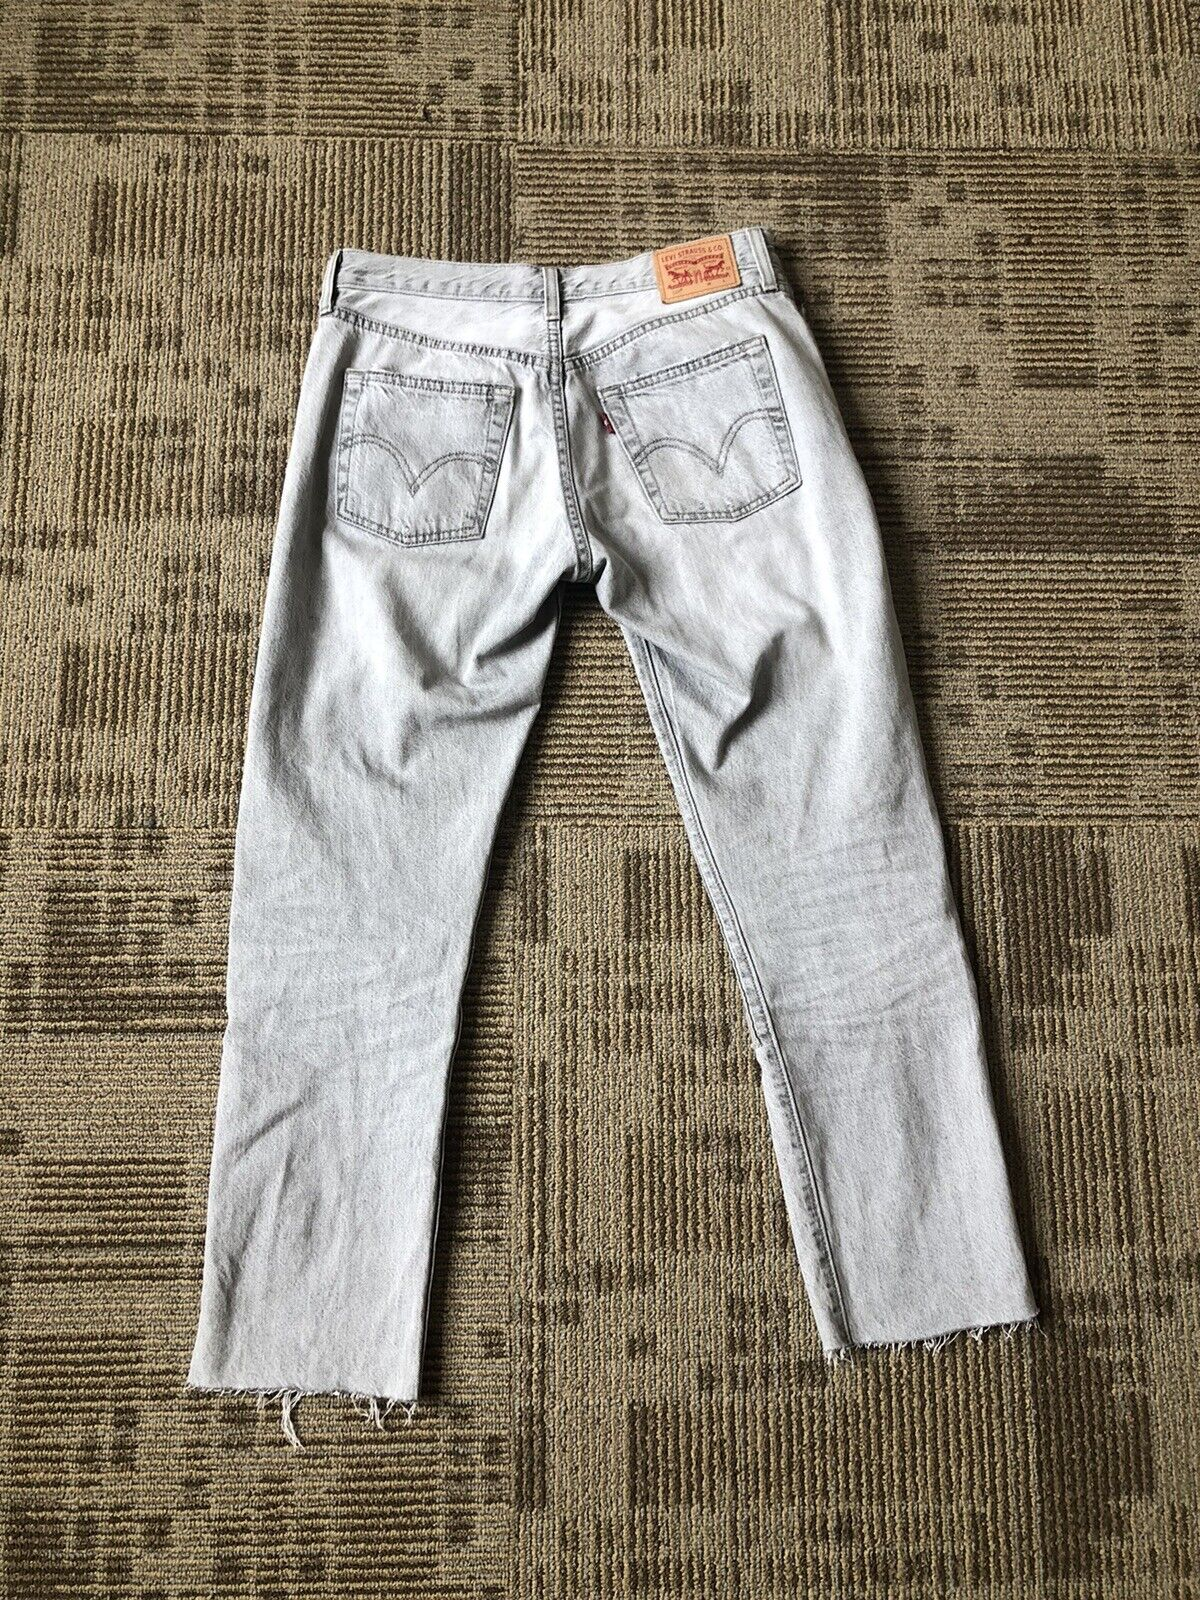 Levis 501 Red Tag Distressed Jeans Size 29 - image 2